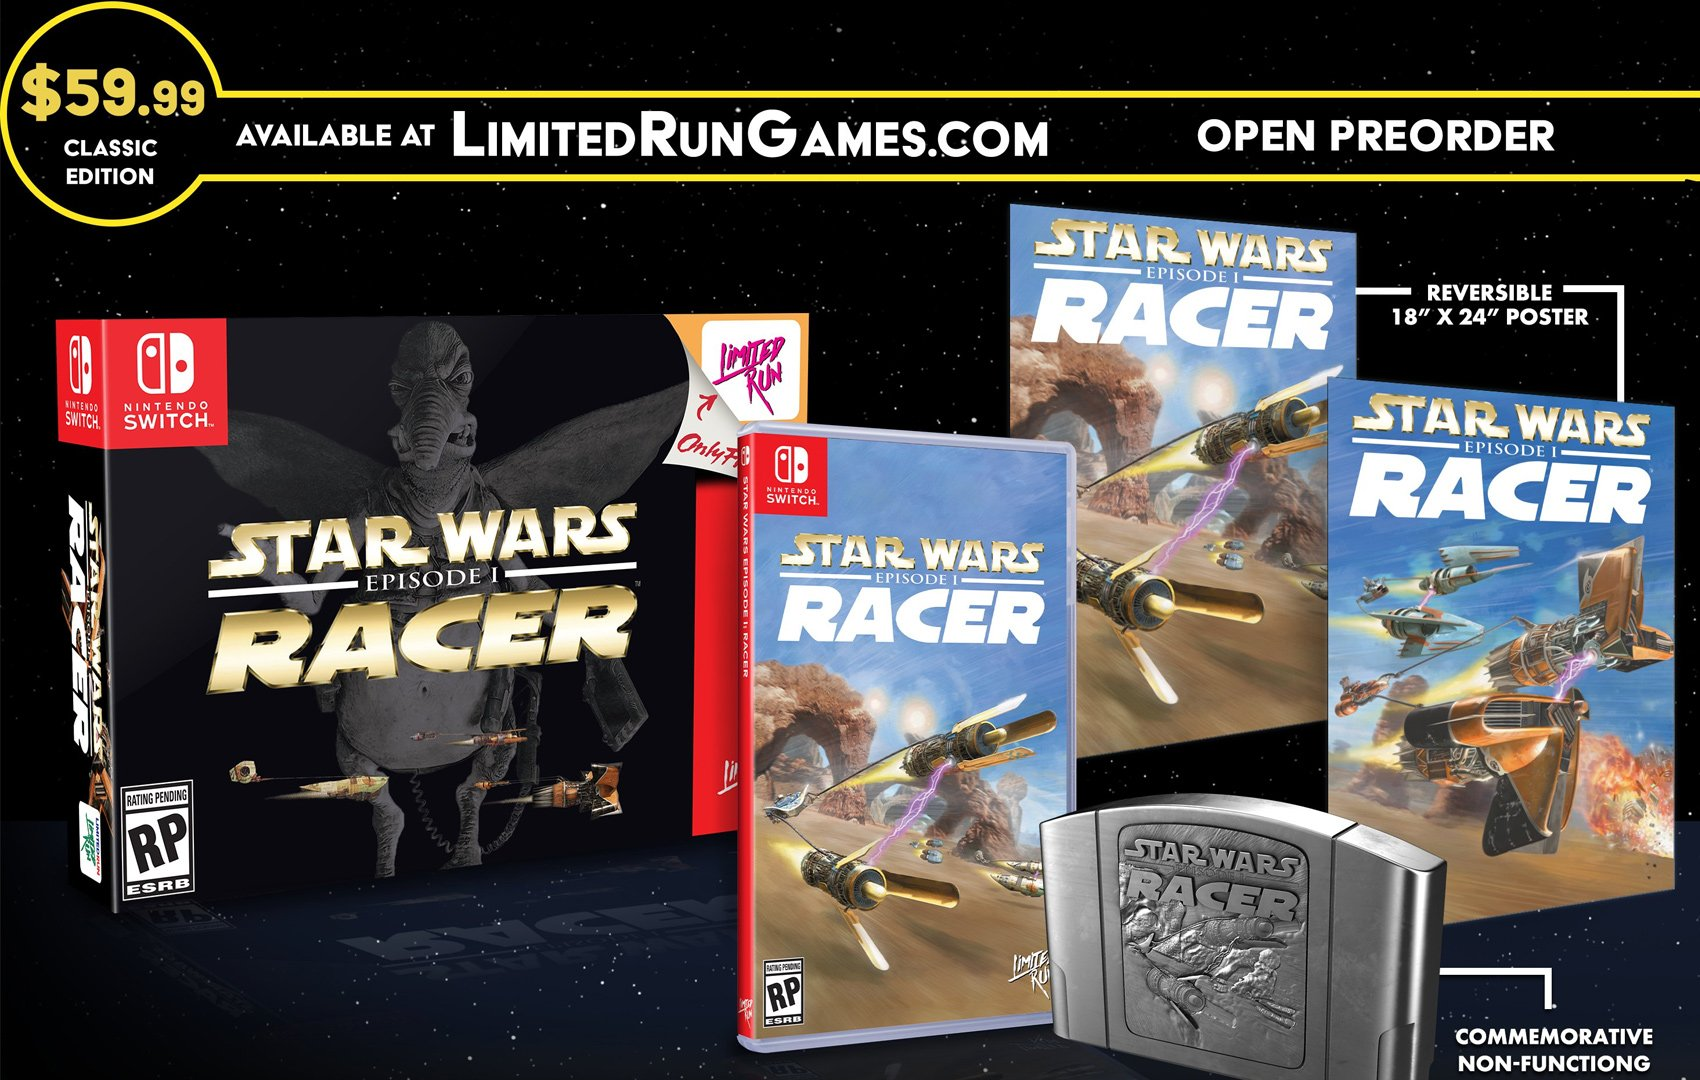 Limited Run's classic edition of Star Wars Episode I: Racer is heavy on N64 nostalgia screenshot